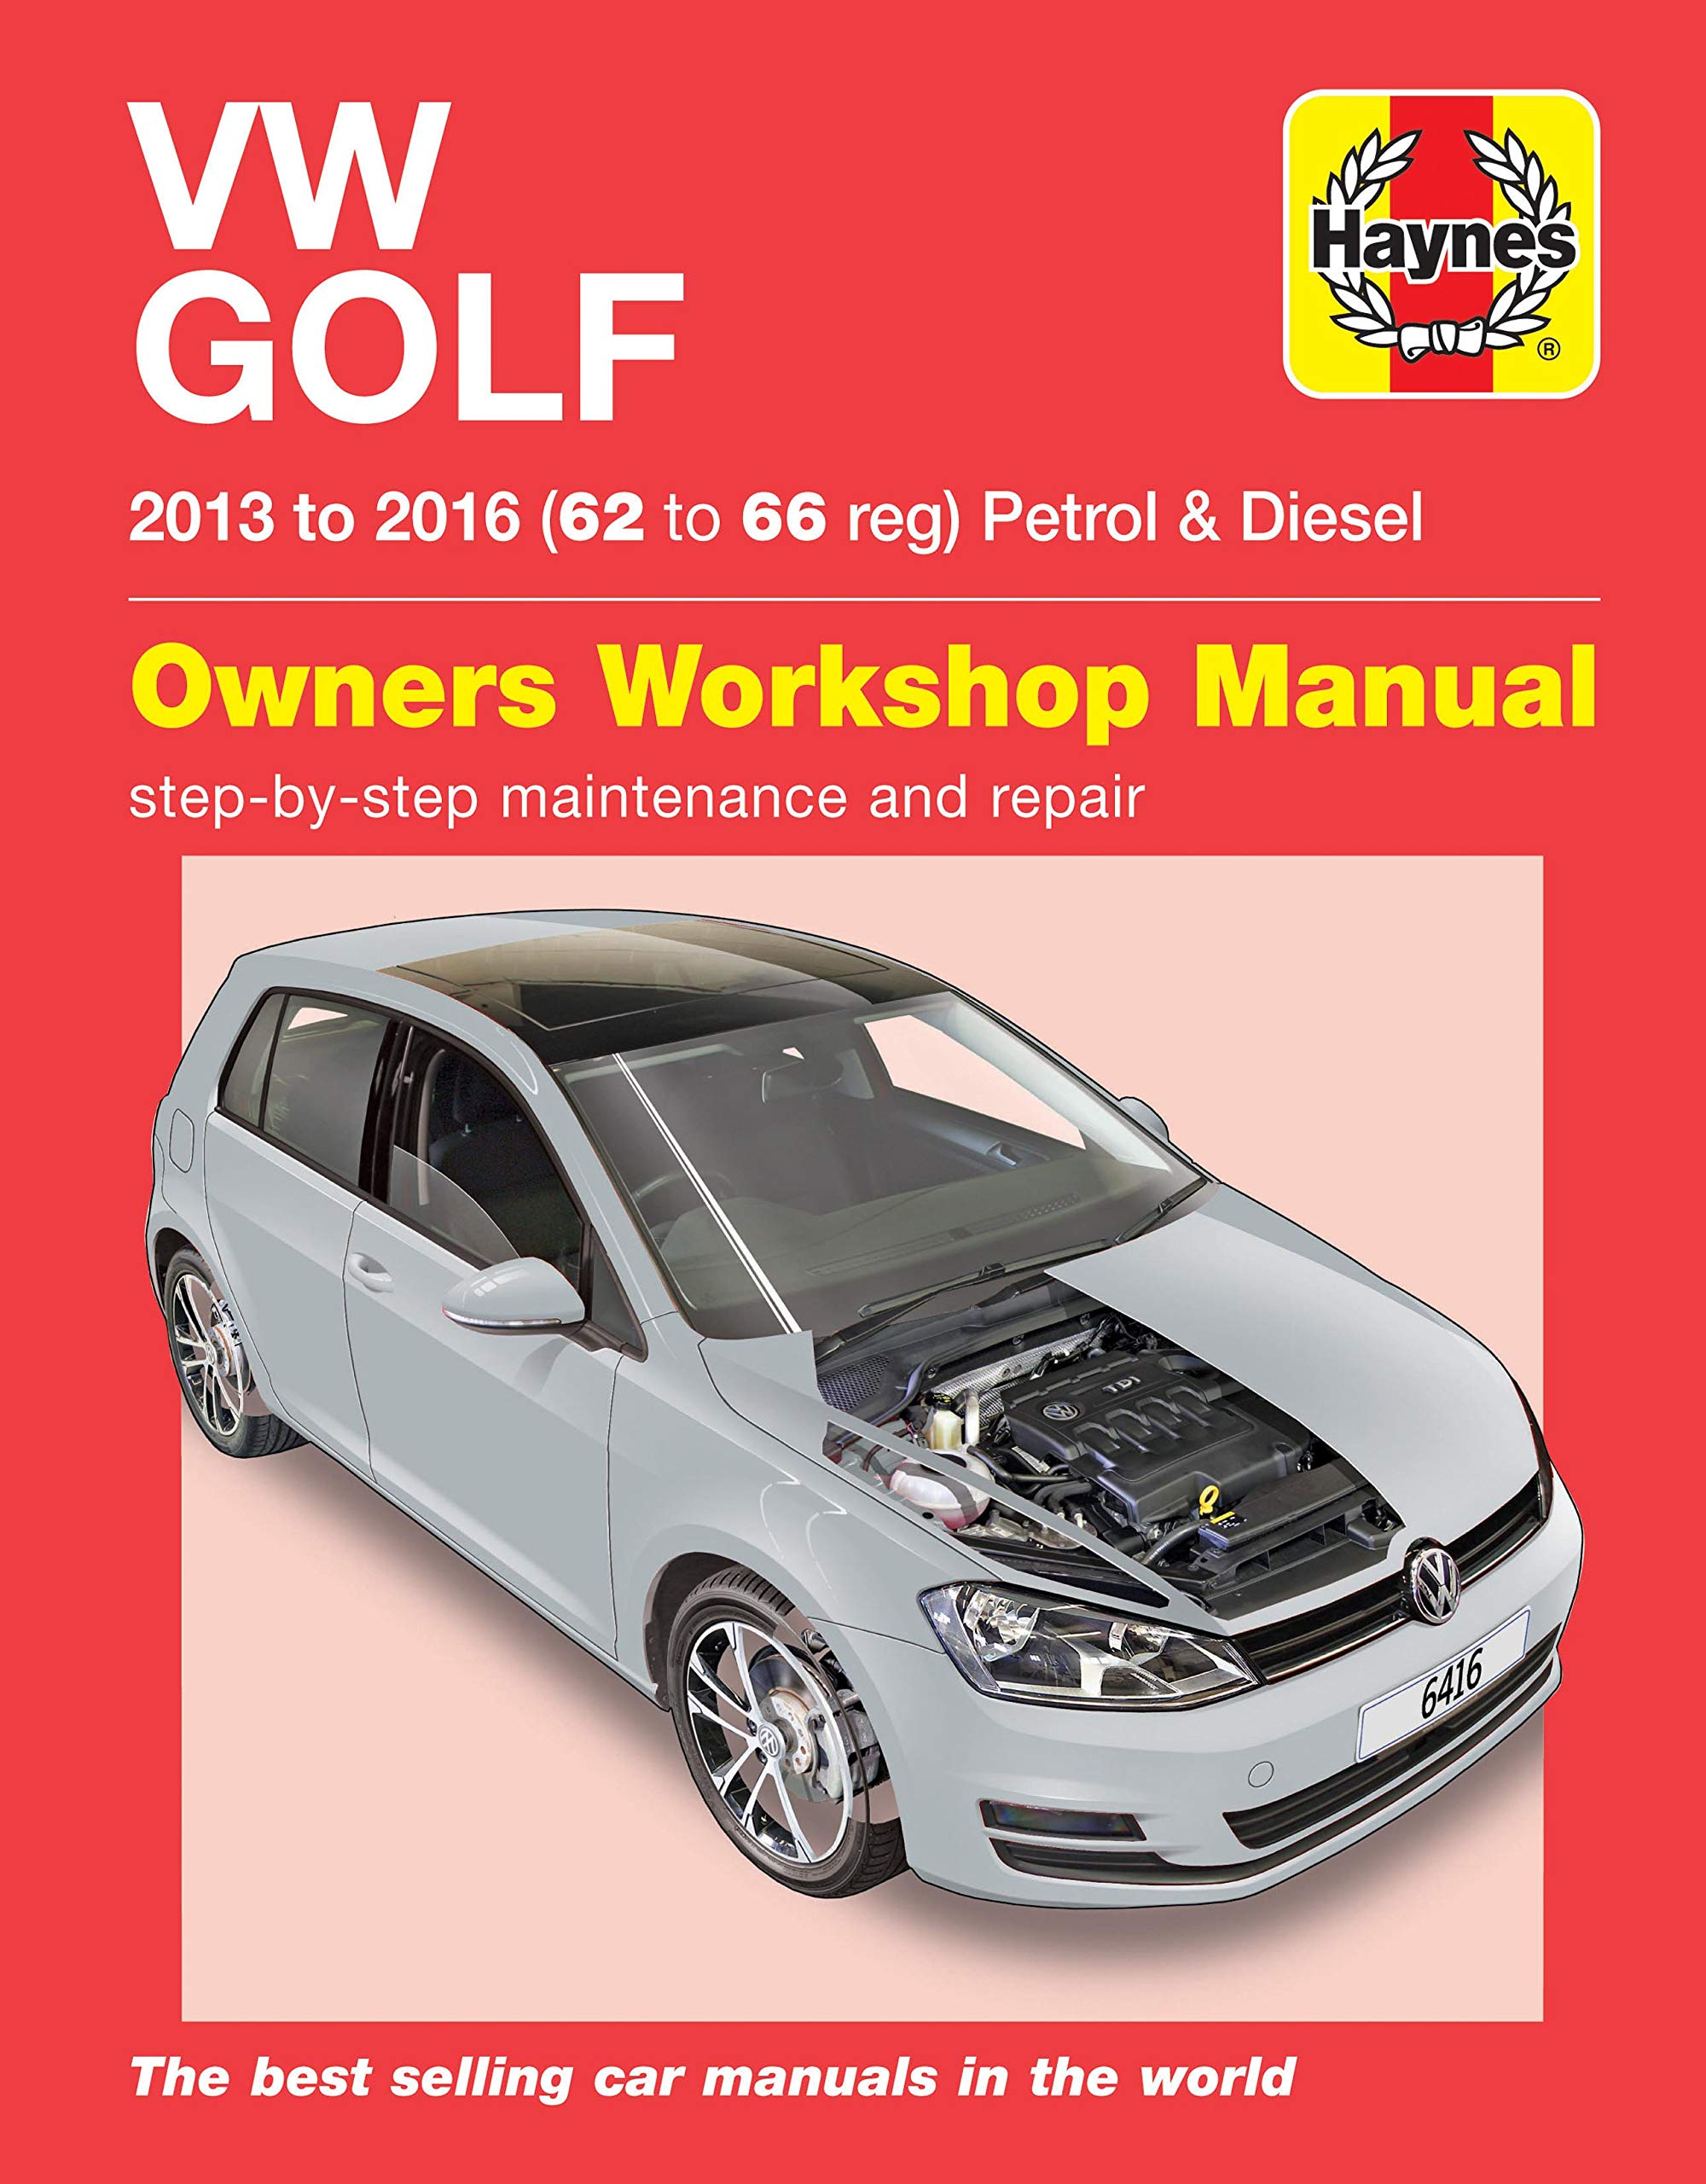 VW Golf petrol & diesel (13-16) 62 to 66: Amazon.es: Mark Storey: Libros en idiomas extranjeros